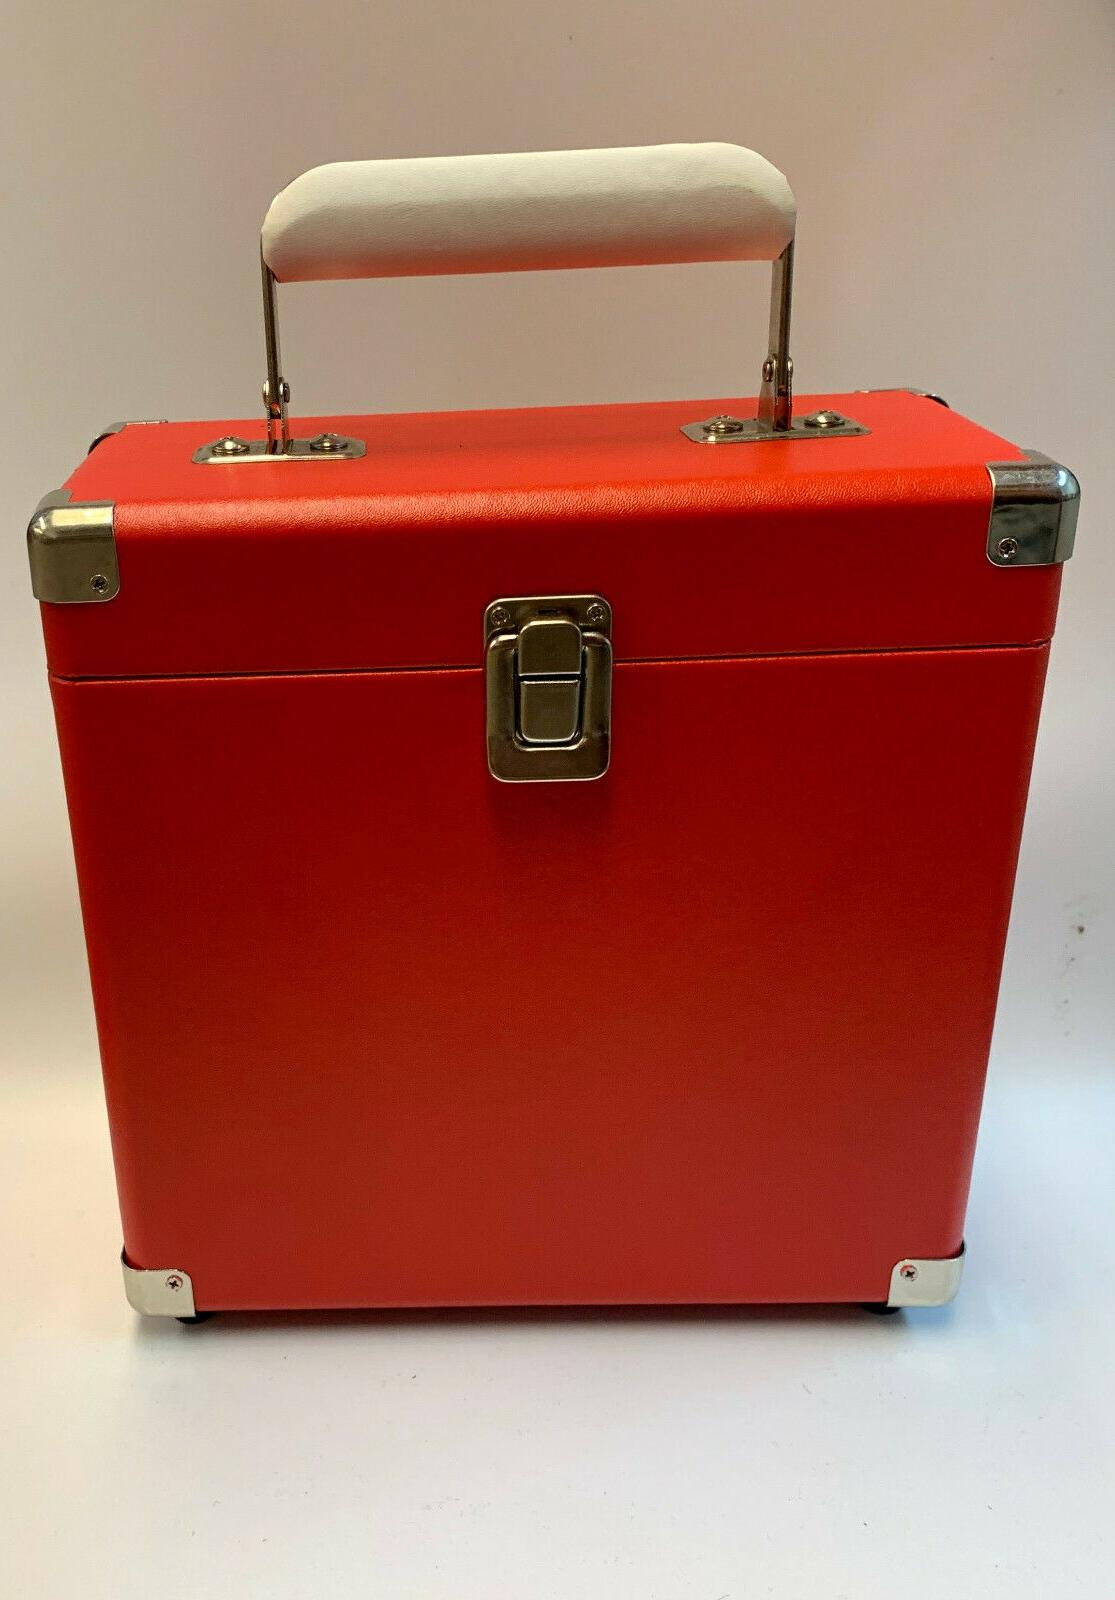 record carrying case 7 inch records decorative